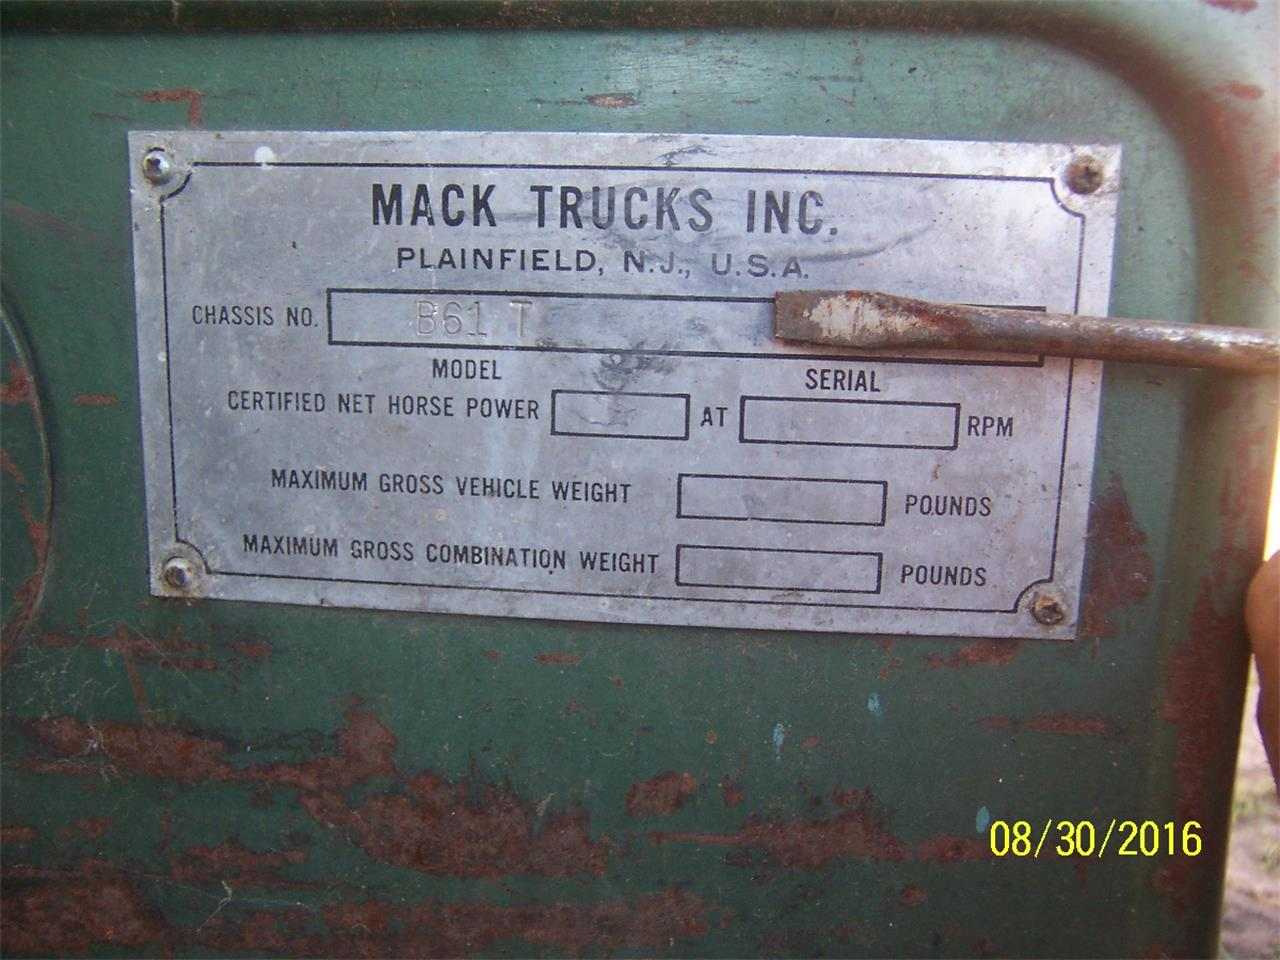 Large Picture of 1957 Mack B61 Truck - $2,000.00 Offered by Dan's Old Cars - KWPG